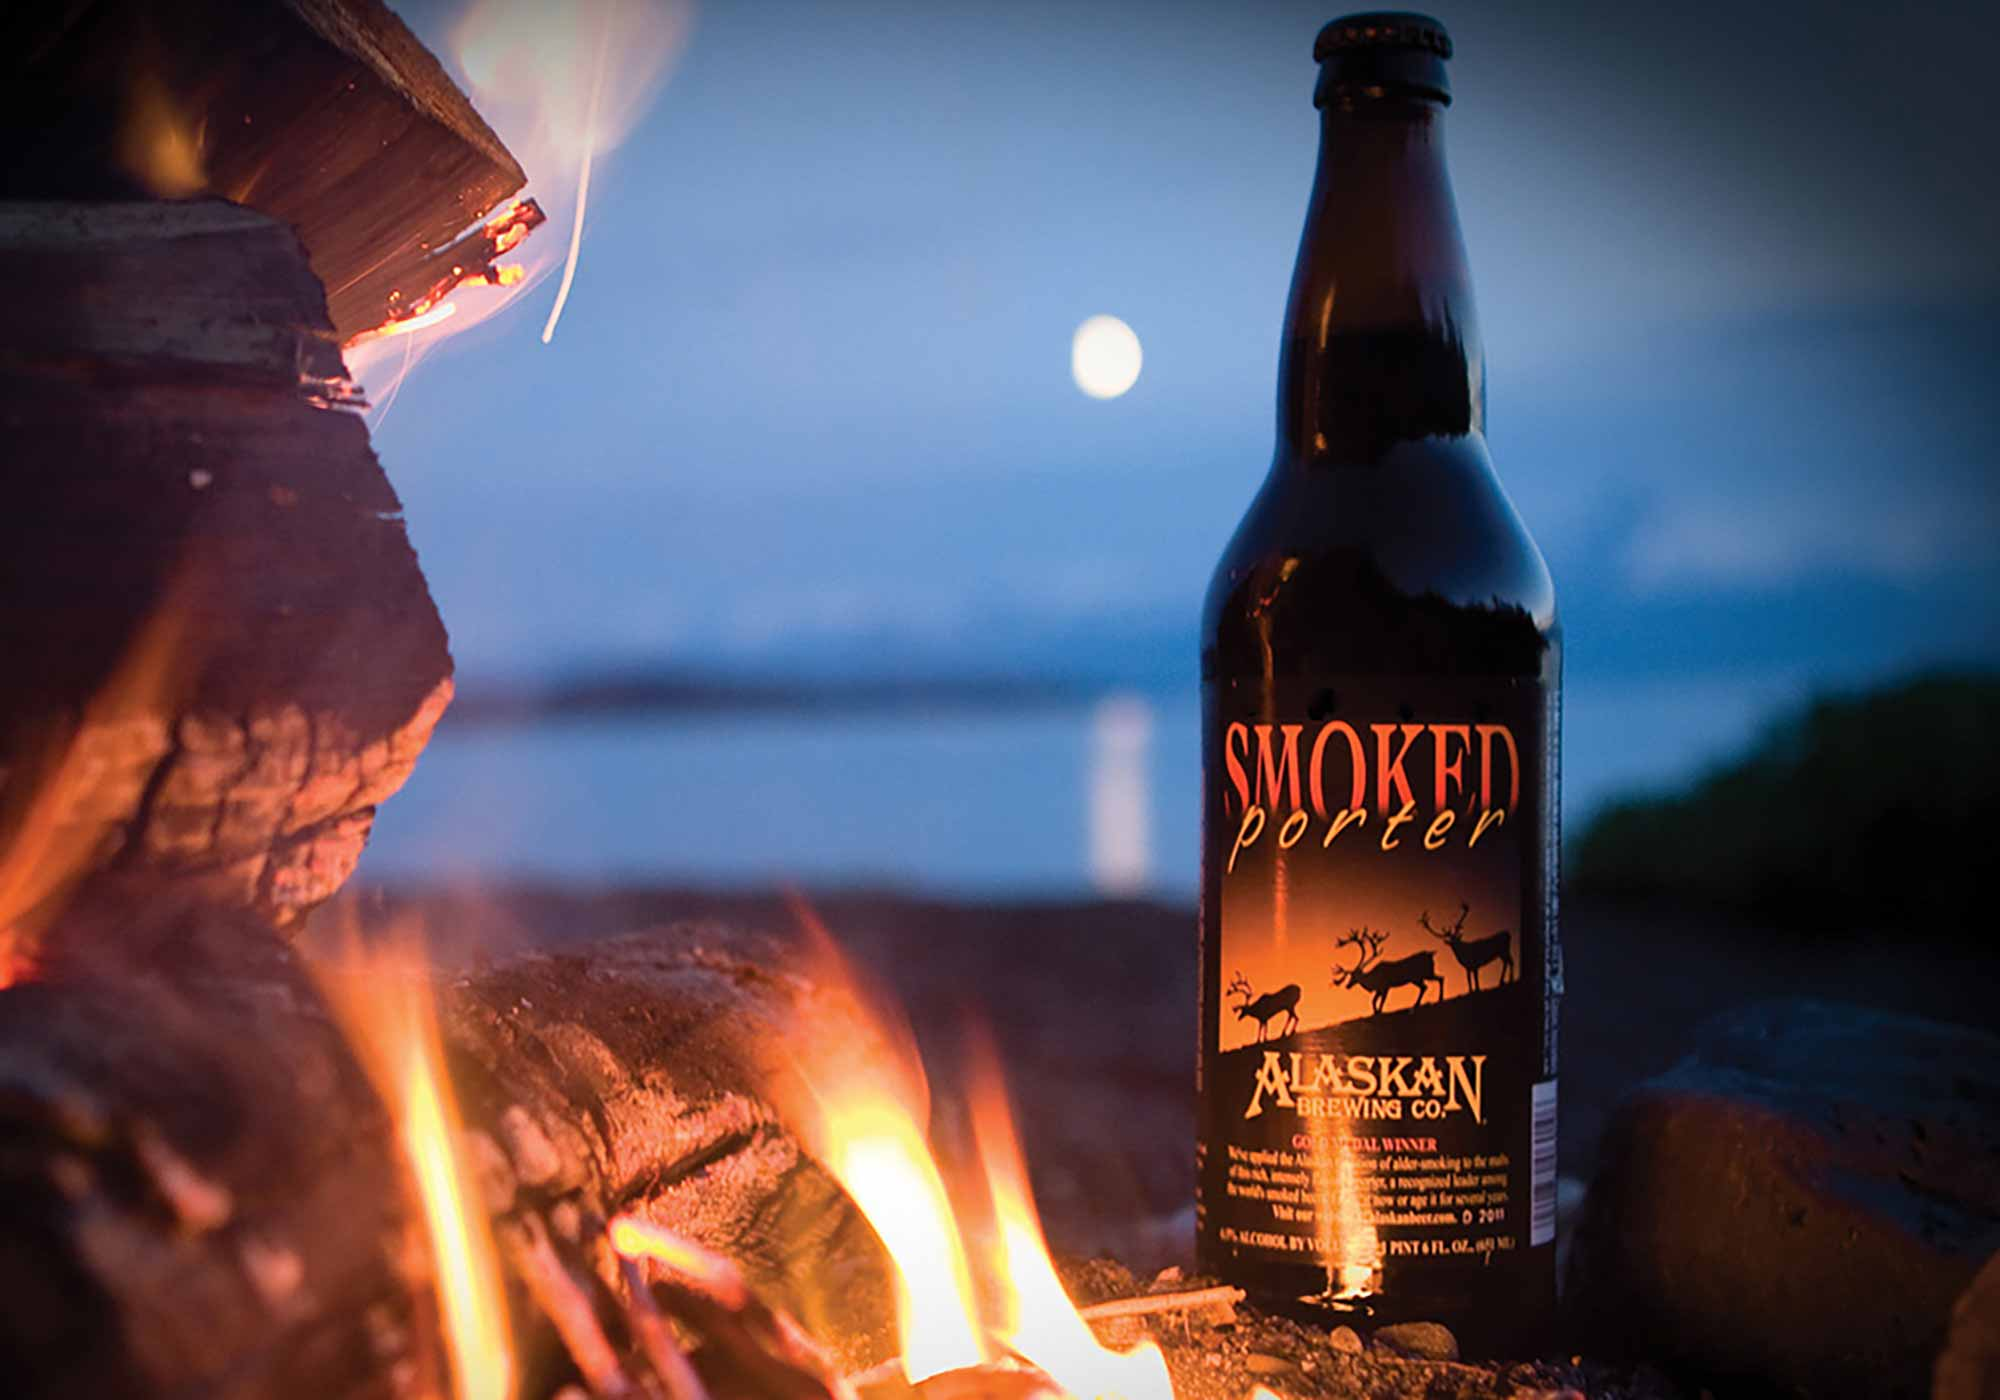 What Is a Smoked Beer?